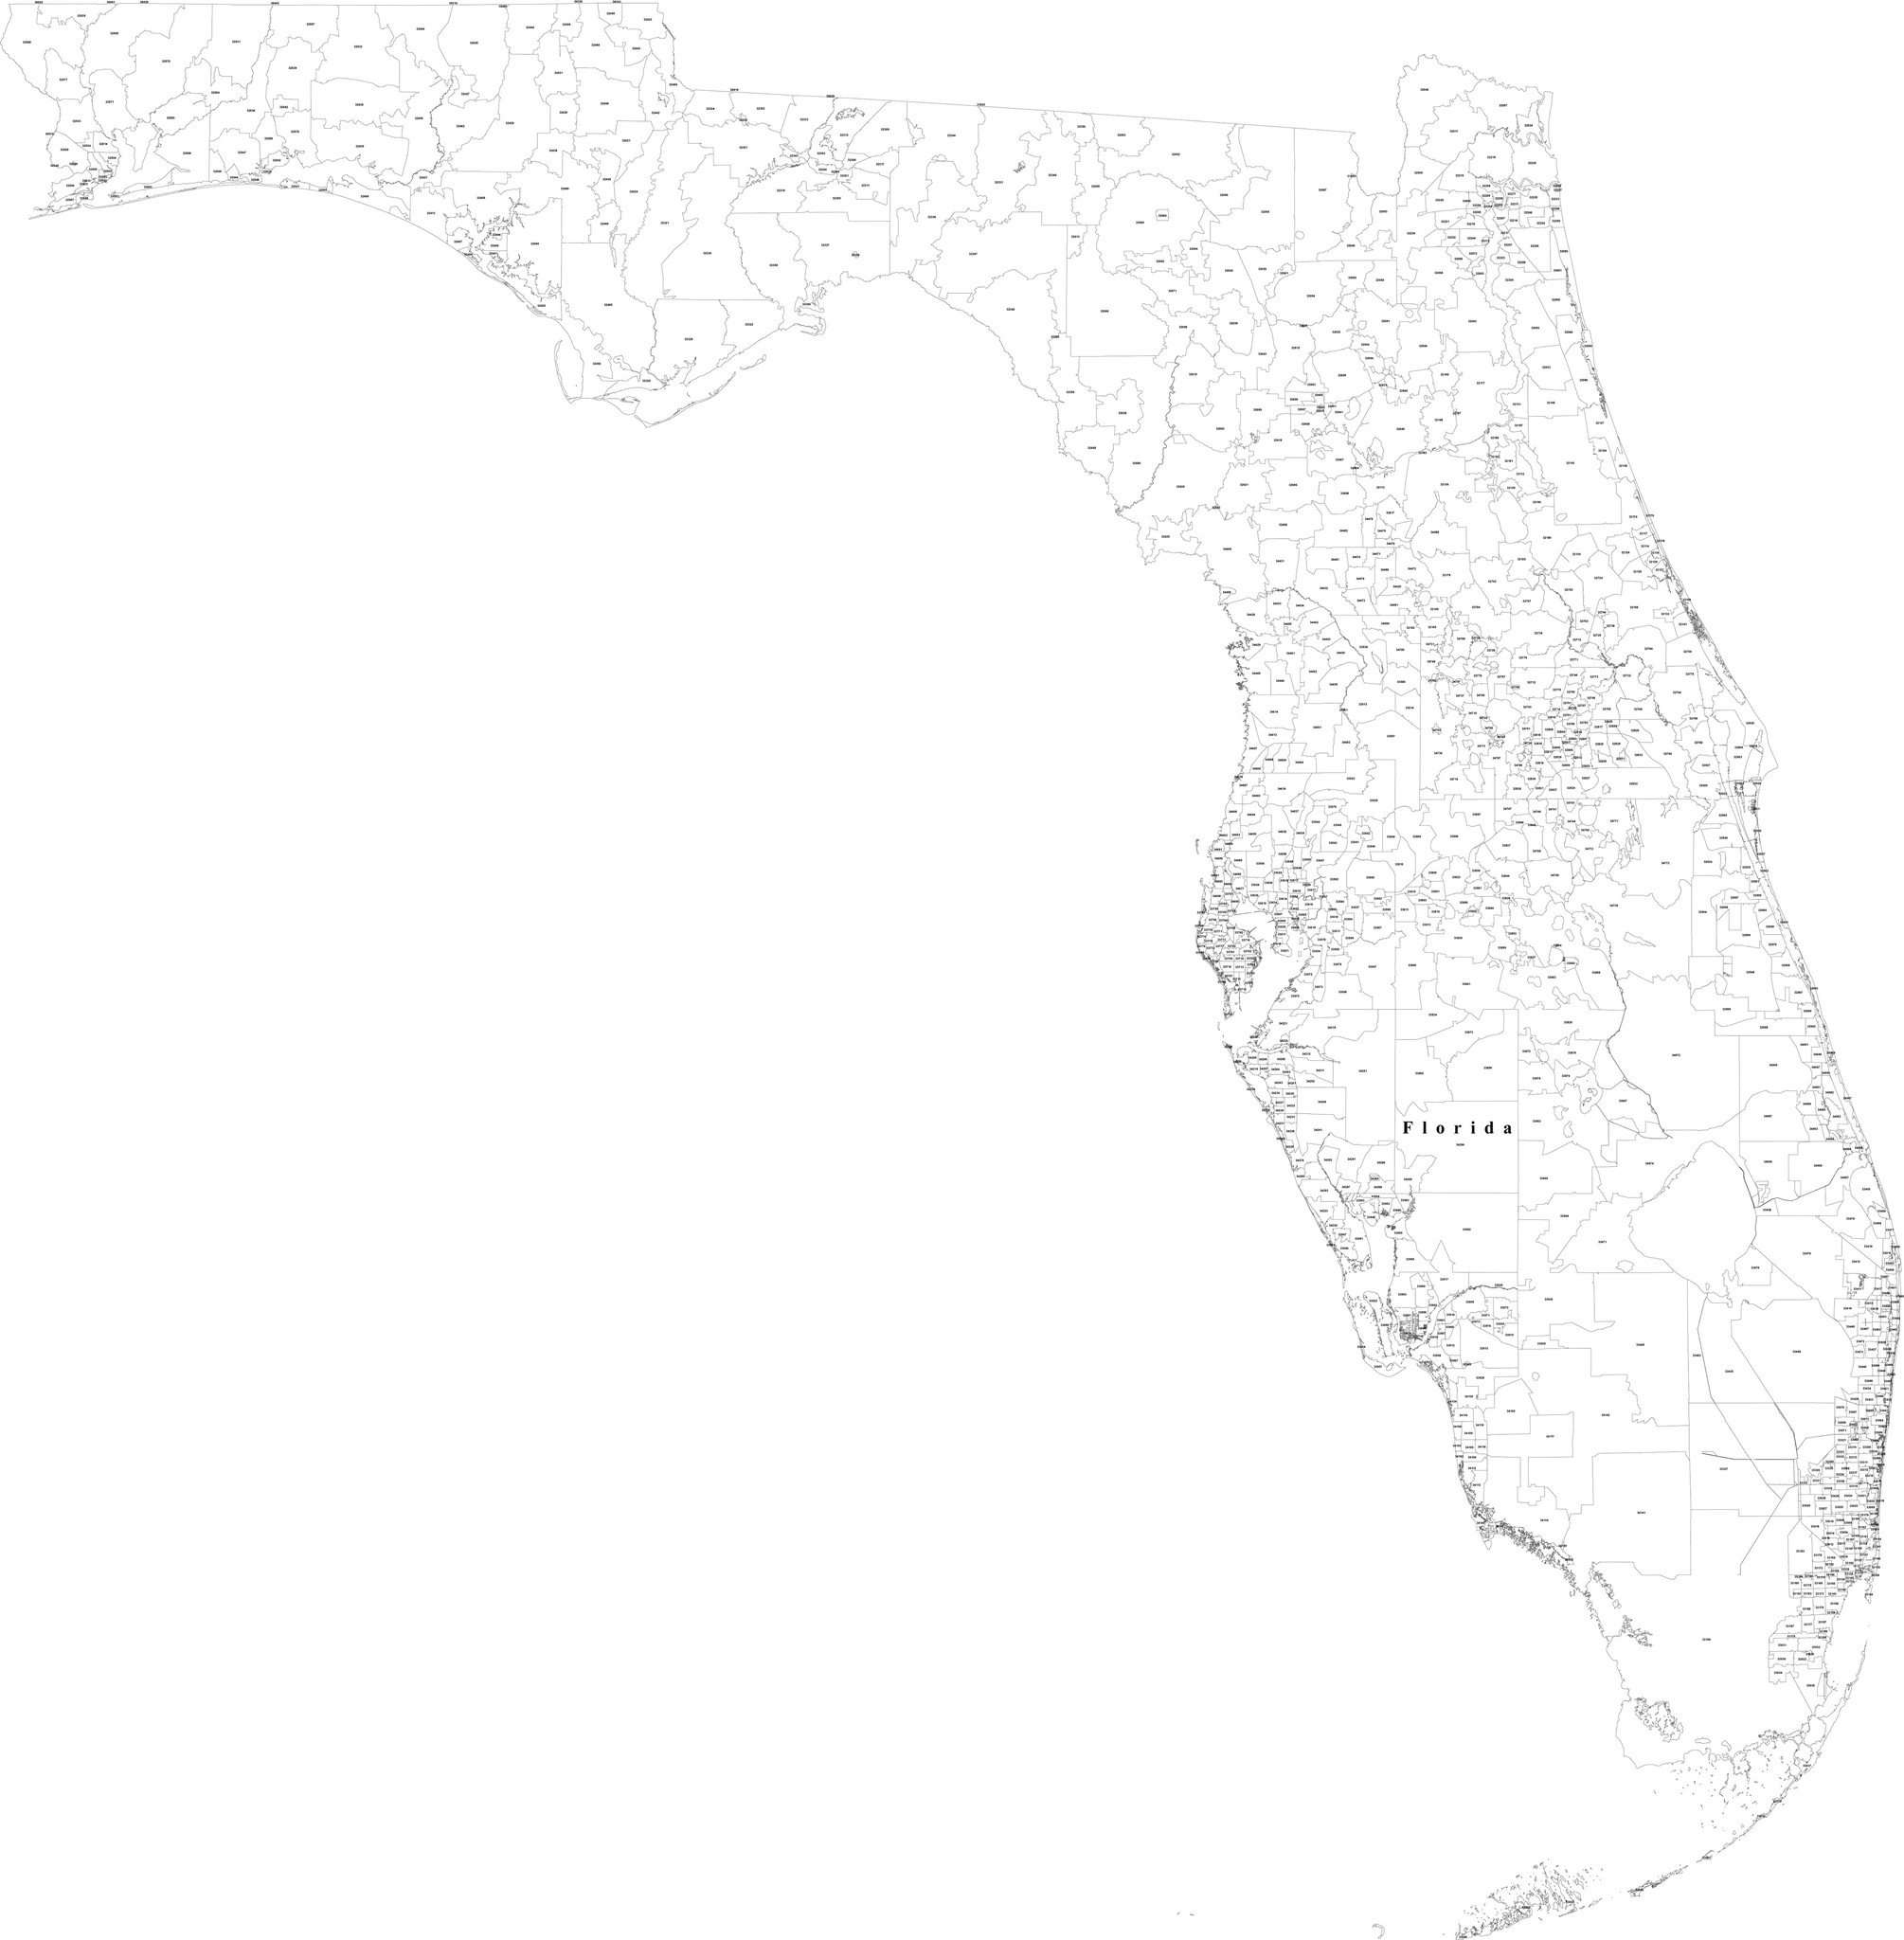 Florida Vector Map  Digit Zip Codes  Map Resources - Florida map black and white